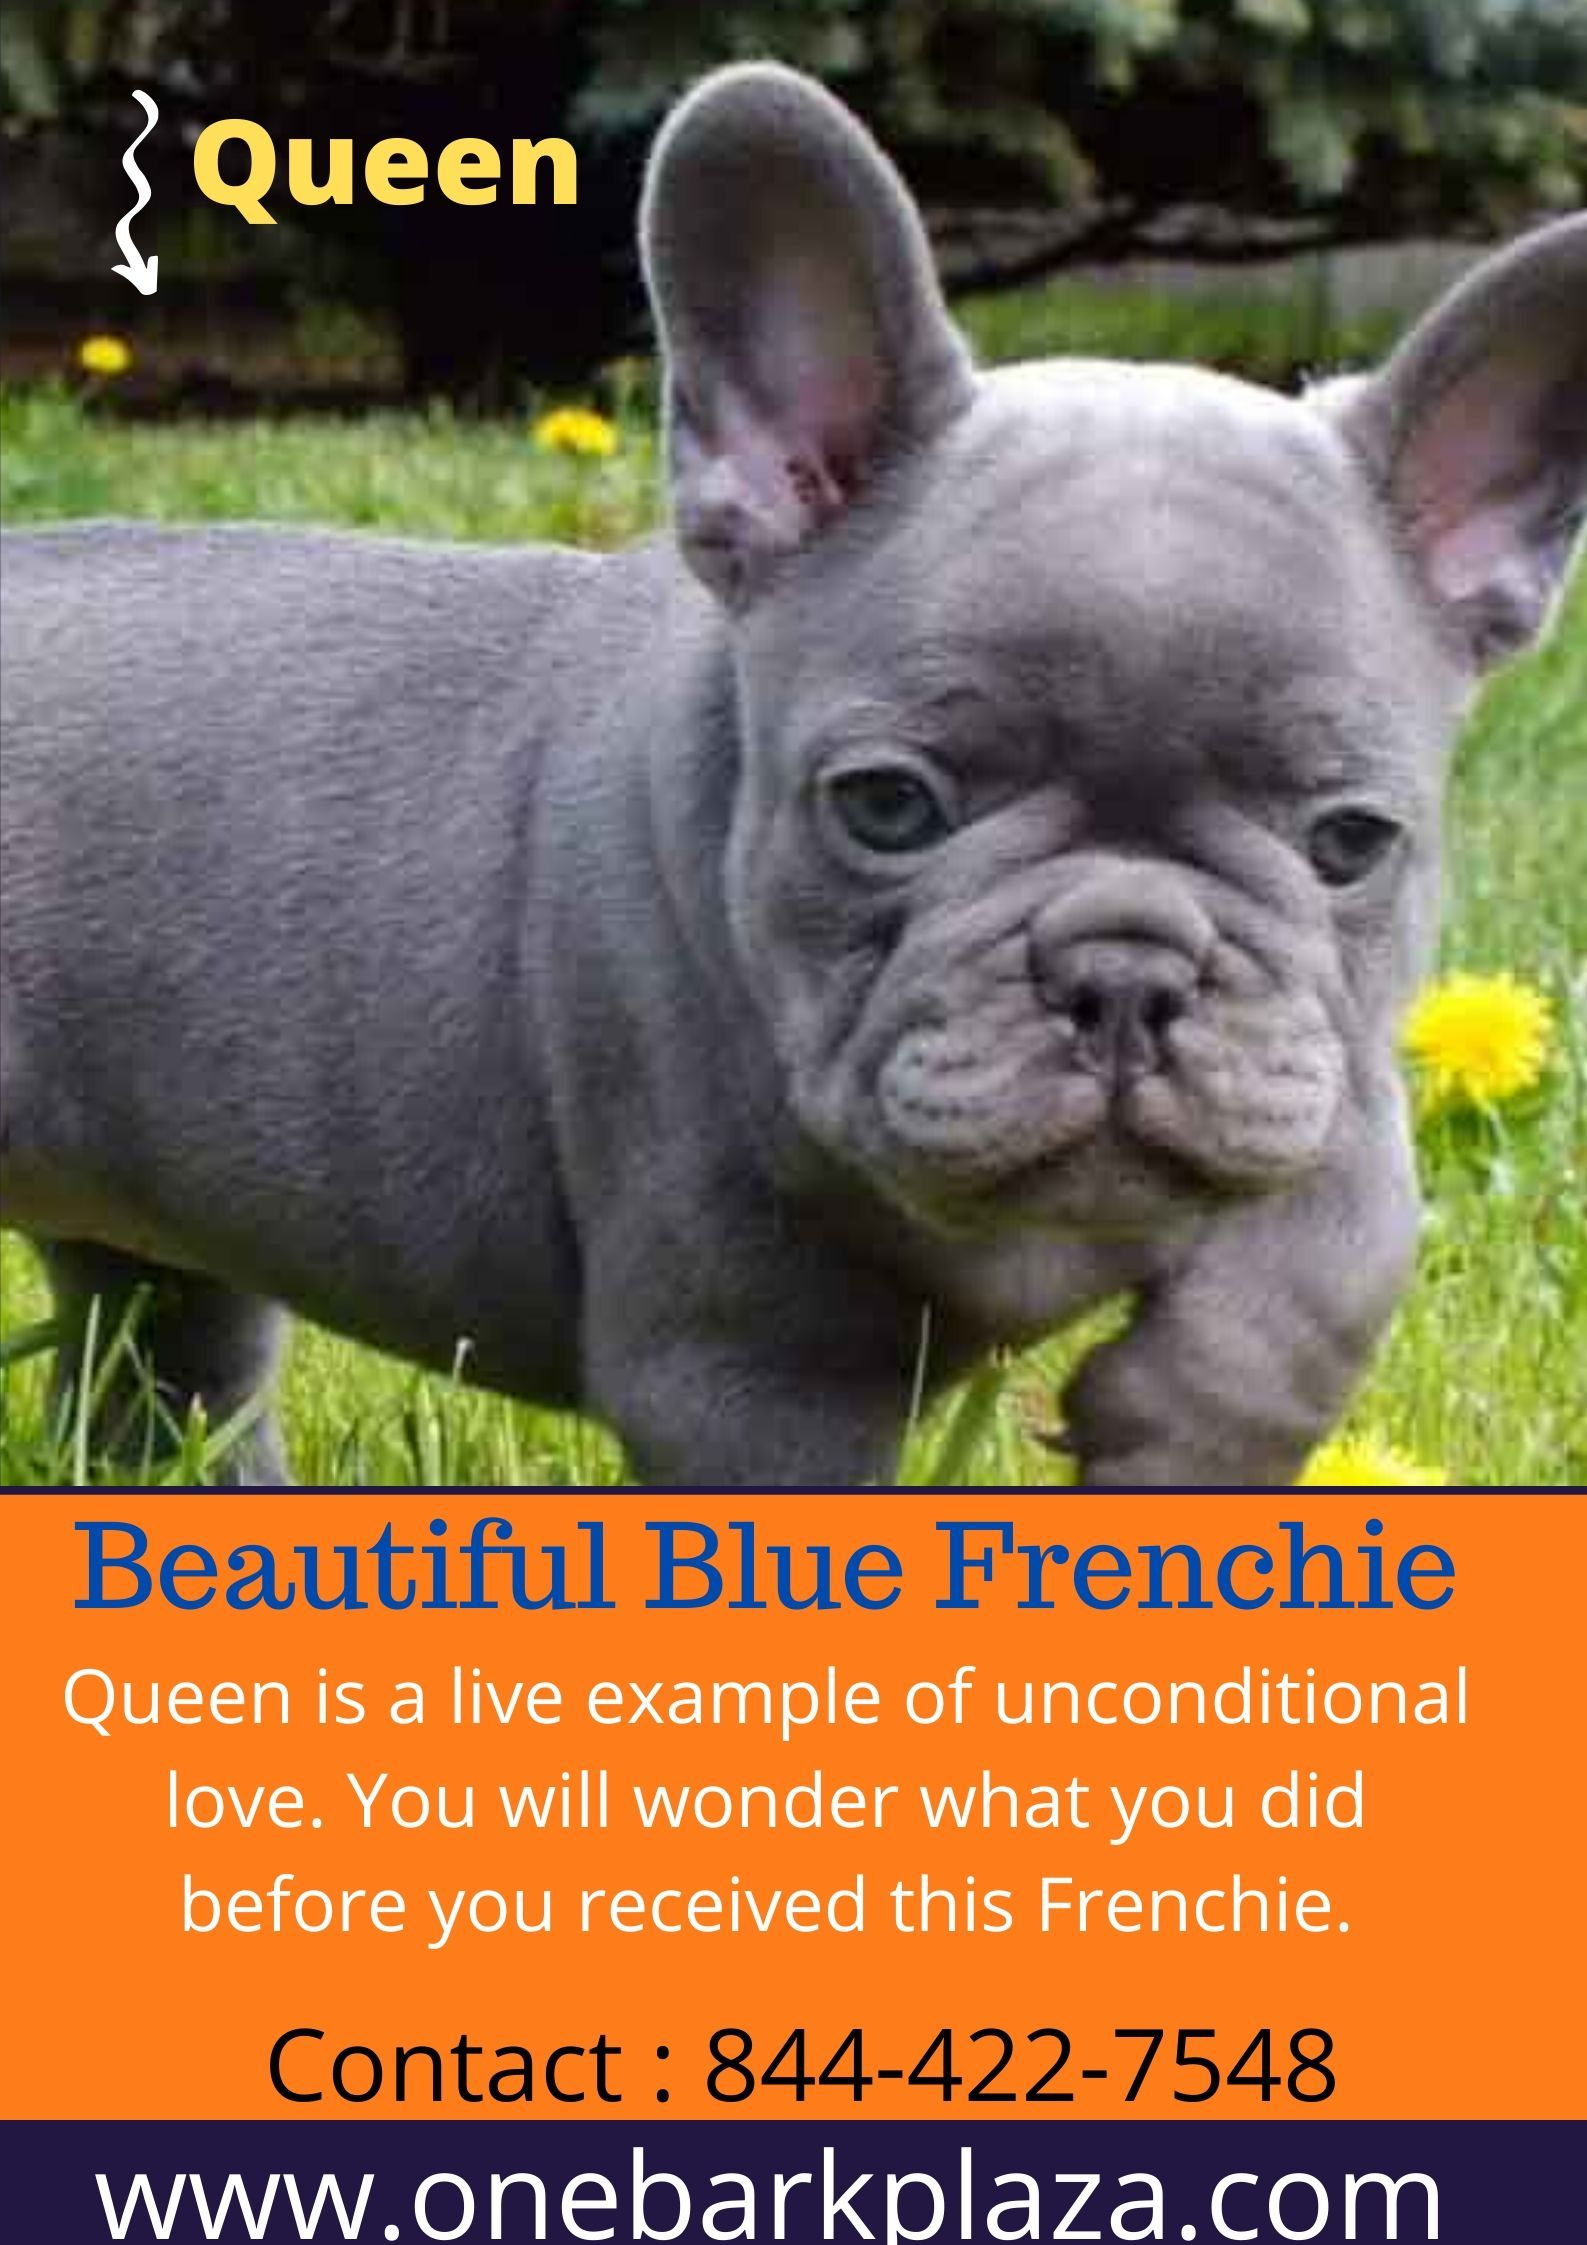 Blue Frenchie in 2020 Blue frenchie, Bulldog puppies for